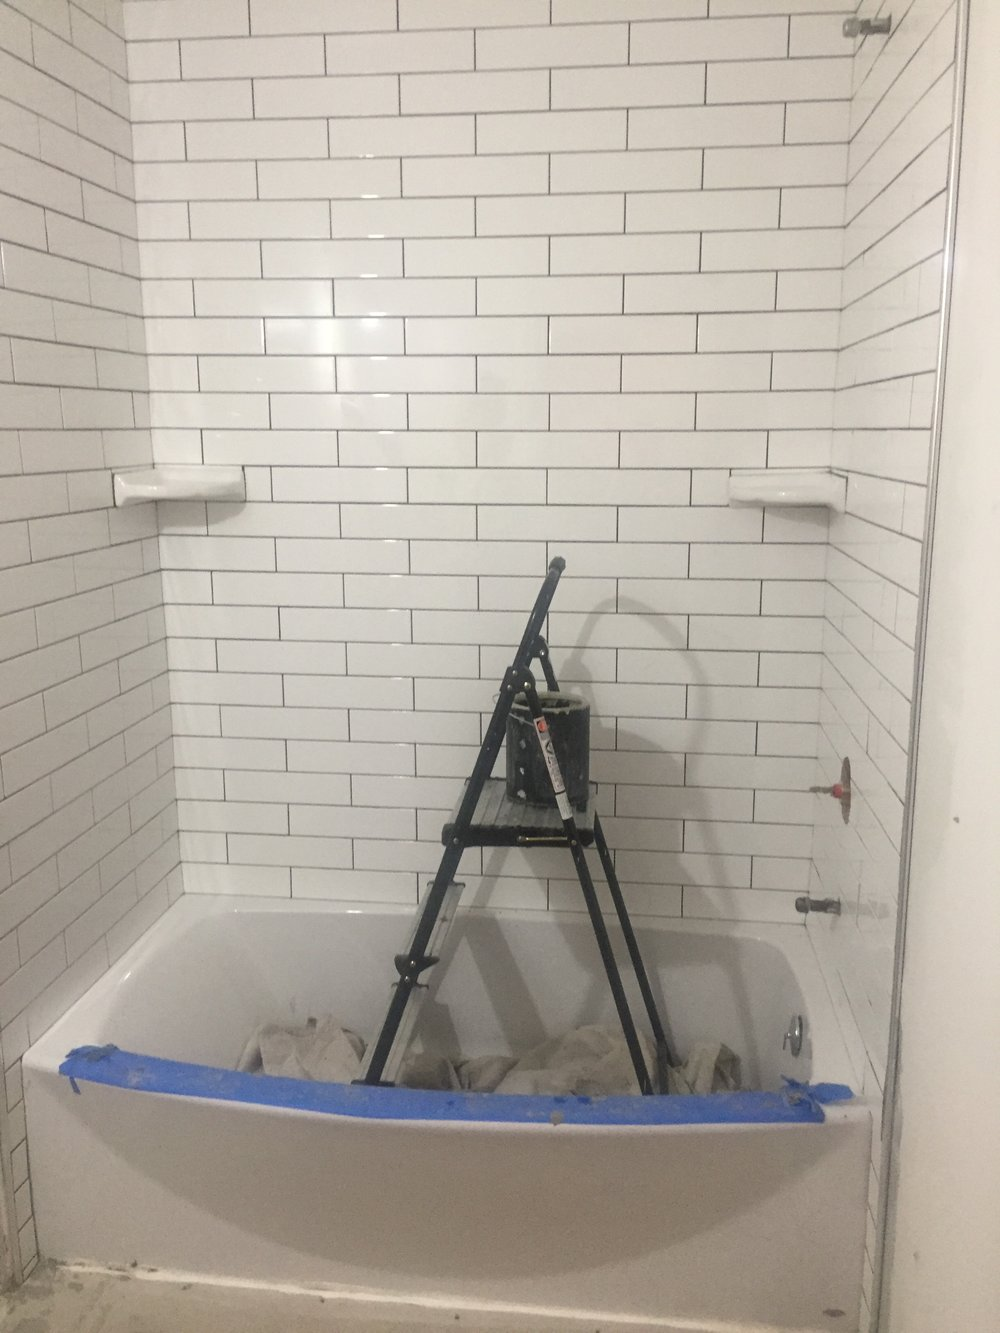 HALL BATH: Completed Tile